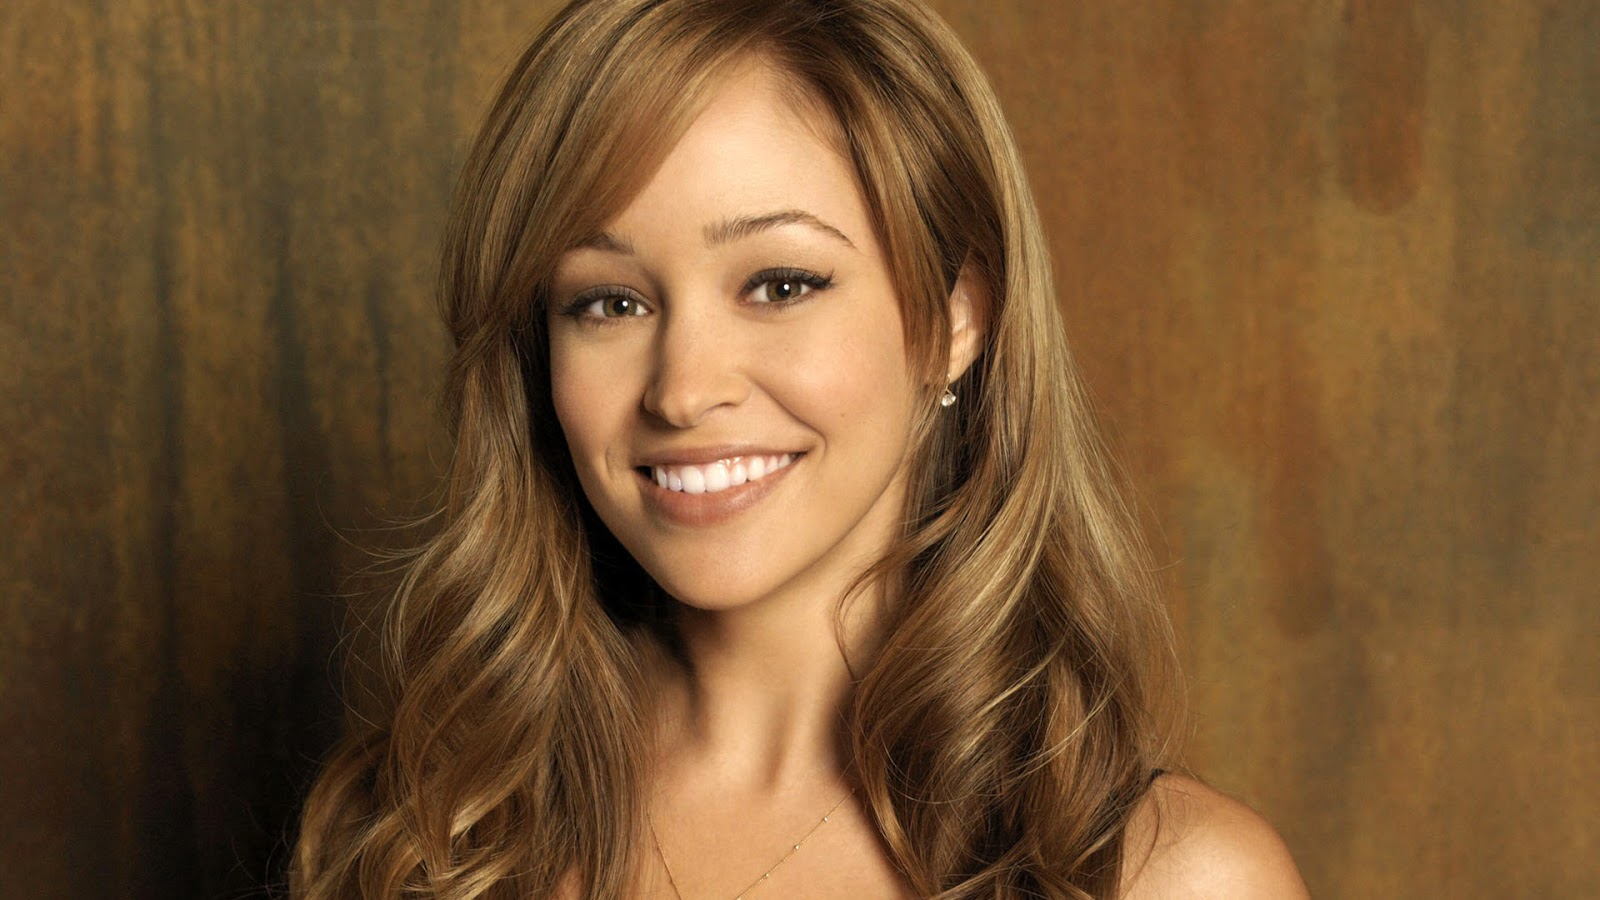 Autumn Reeser nude - The Big Bang - HD